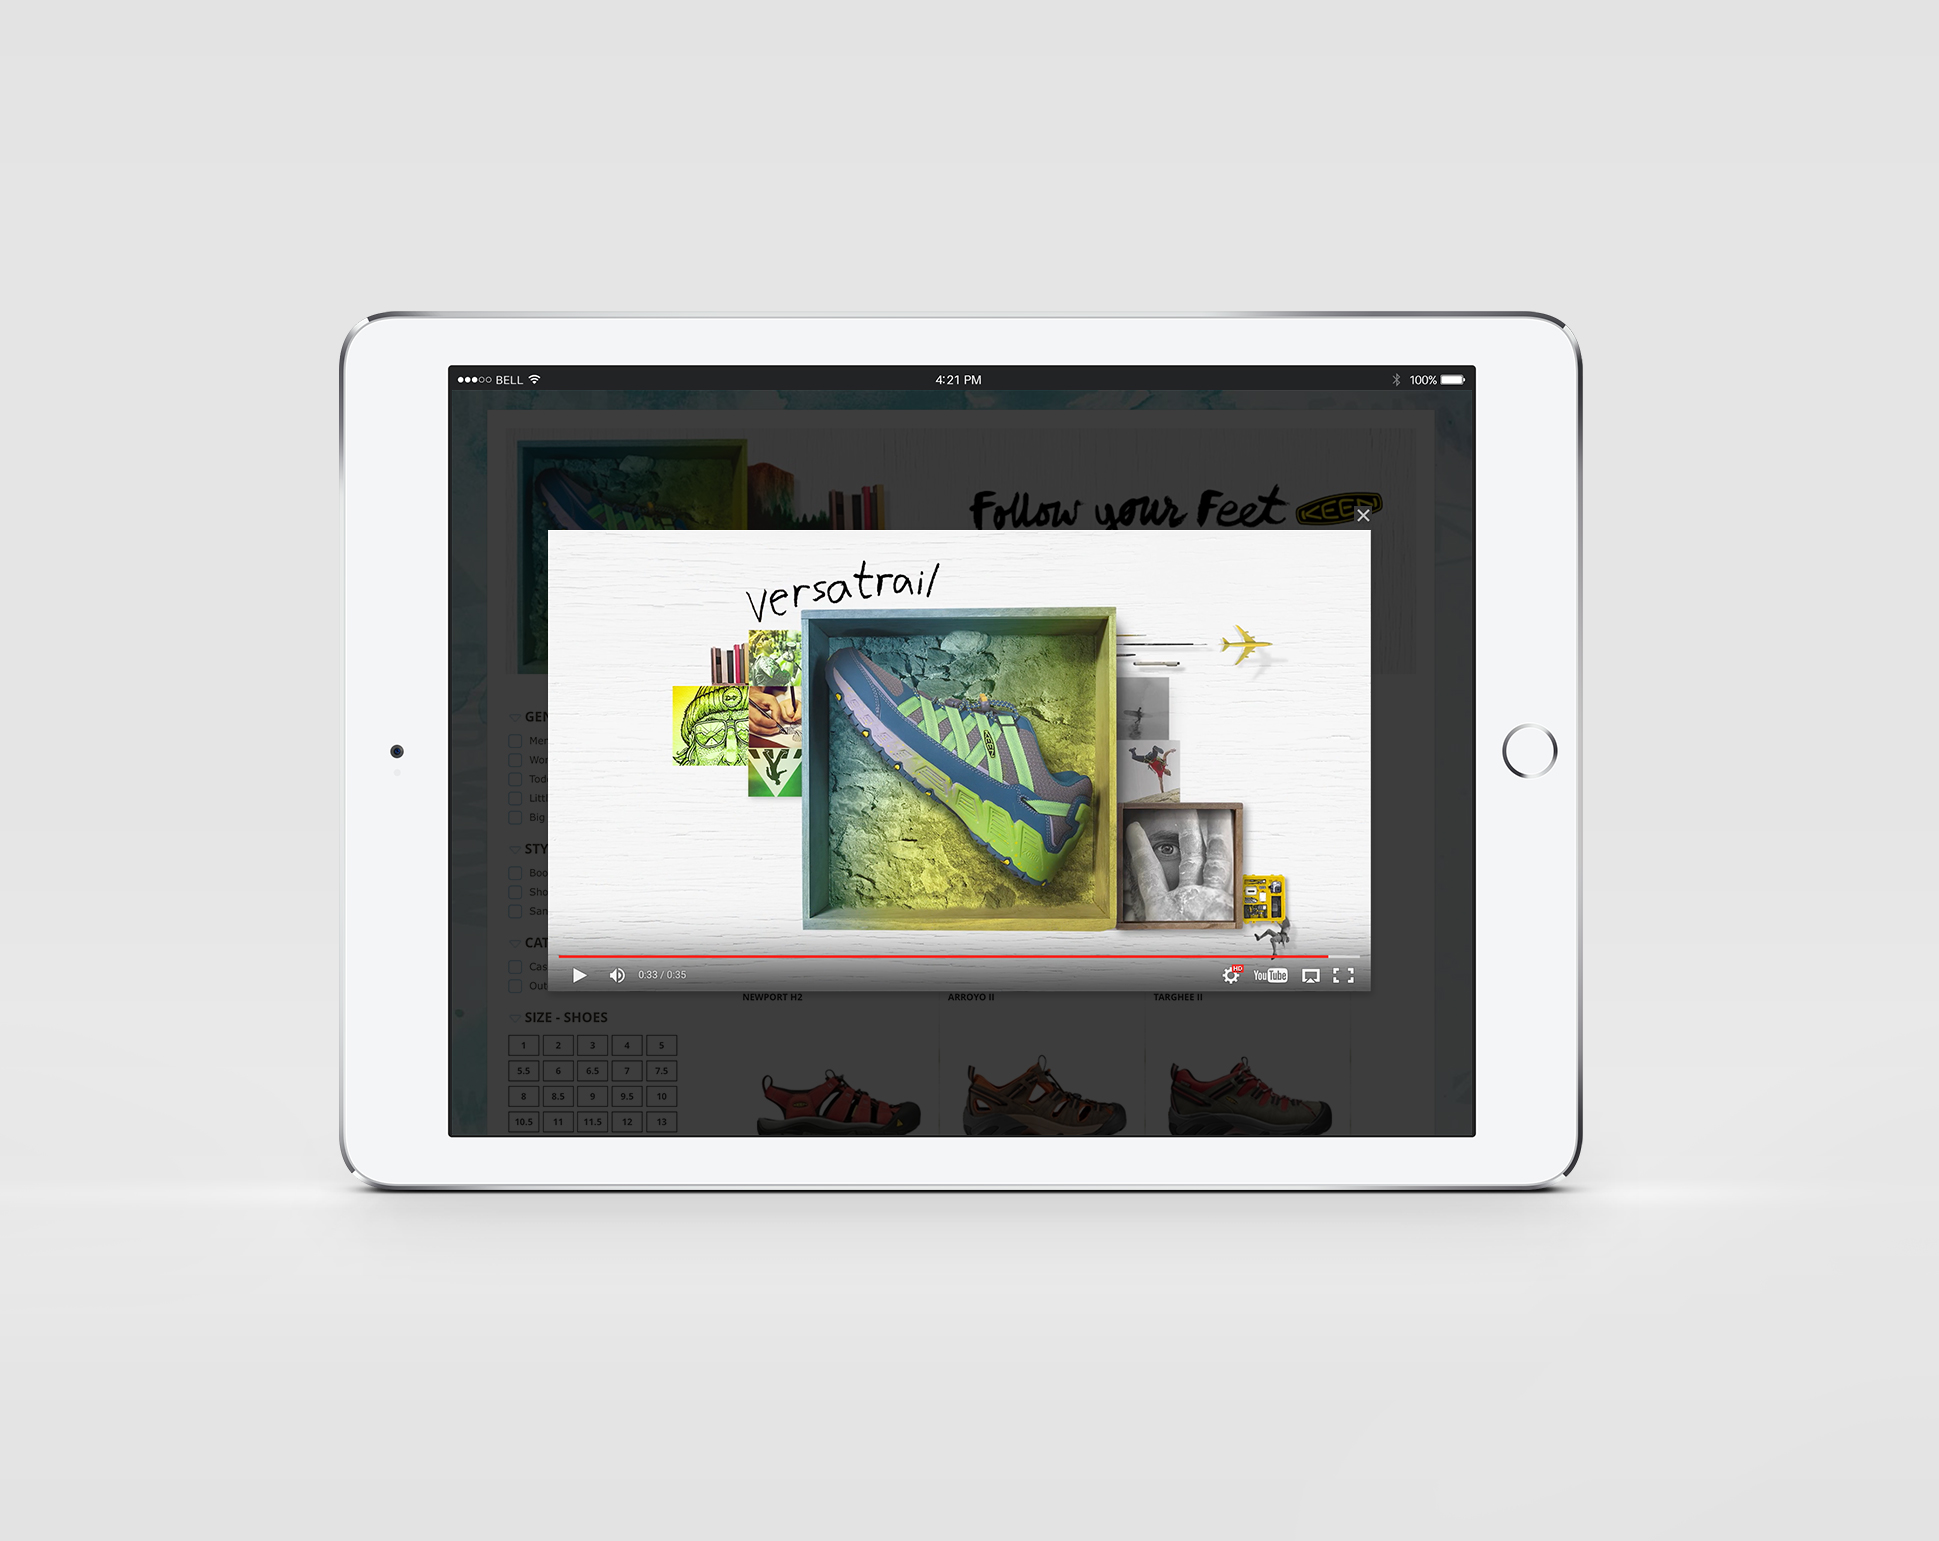 Youtube video for Keen that shows the beautiful arrangement of photography and framed images with flowers and beach related items with KEEN logo on smart tablet